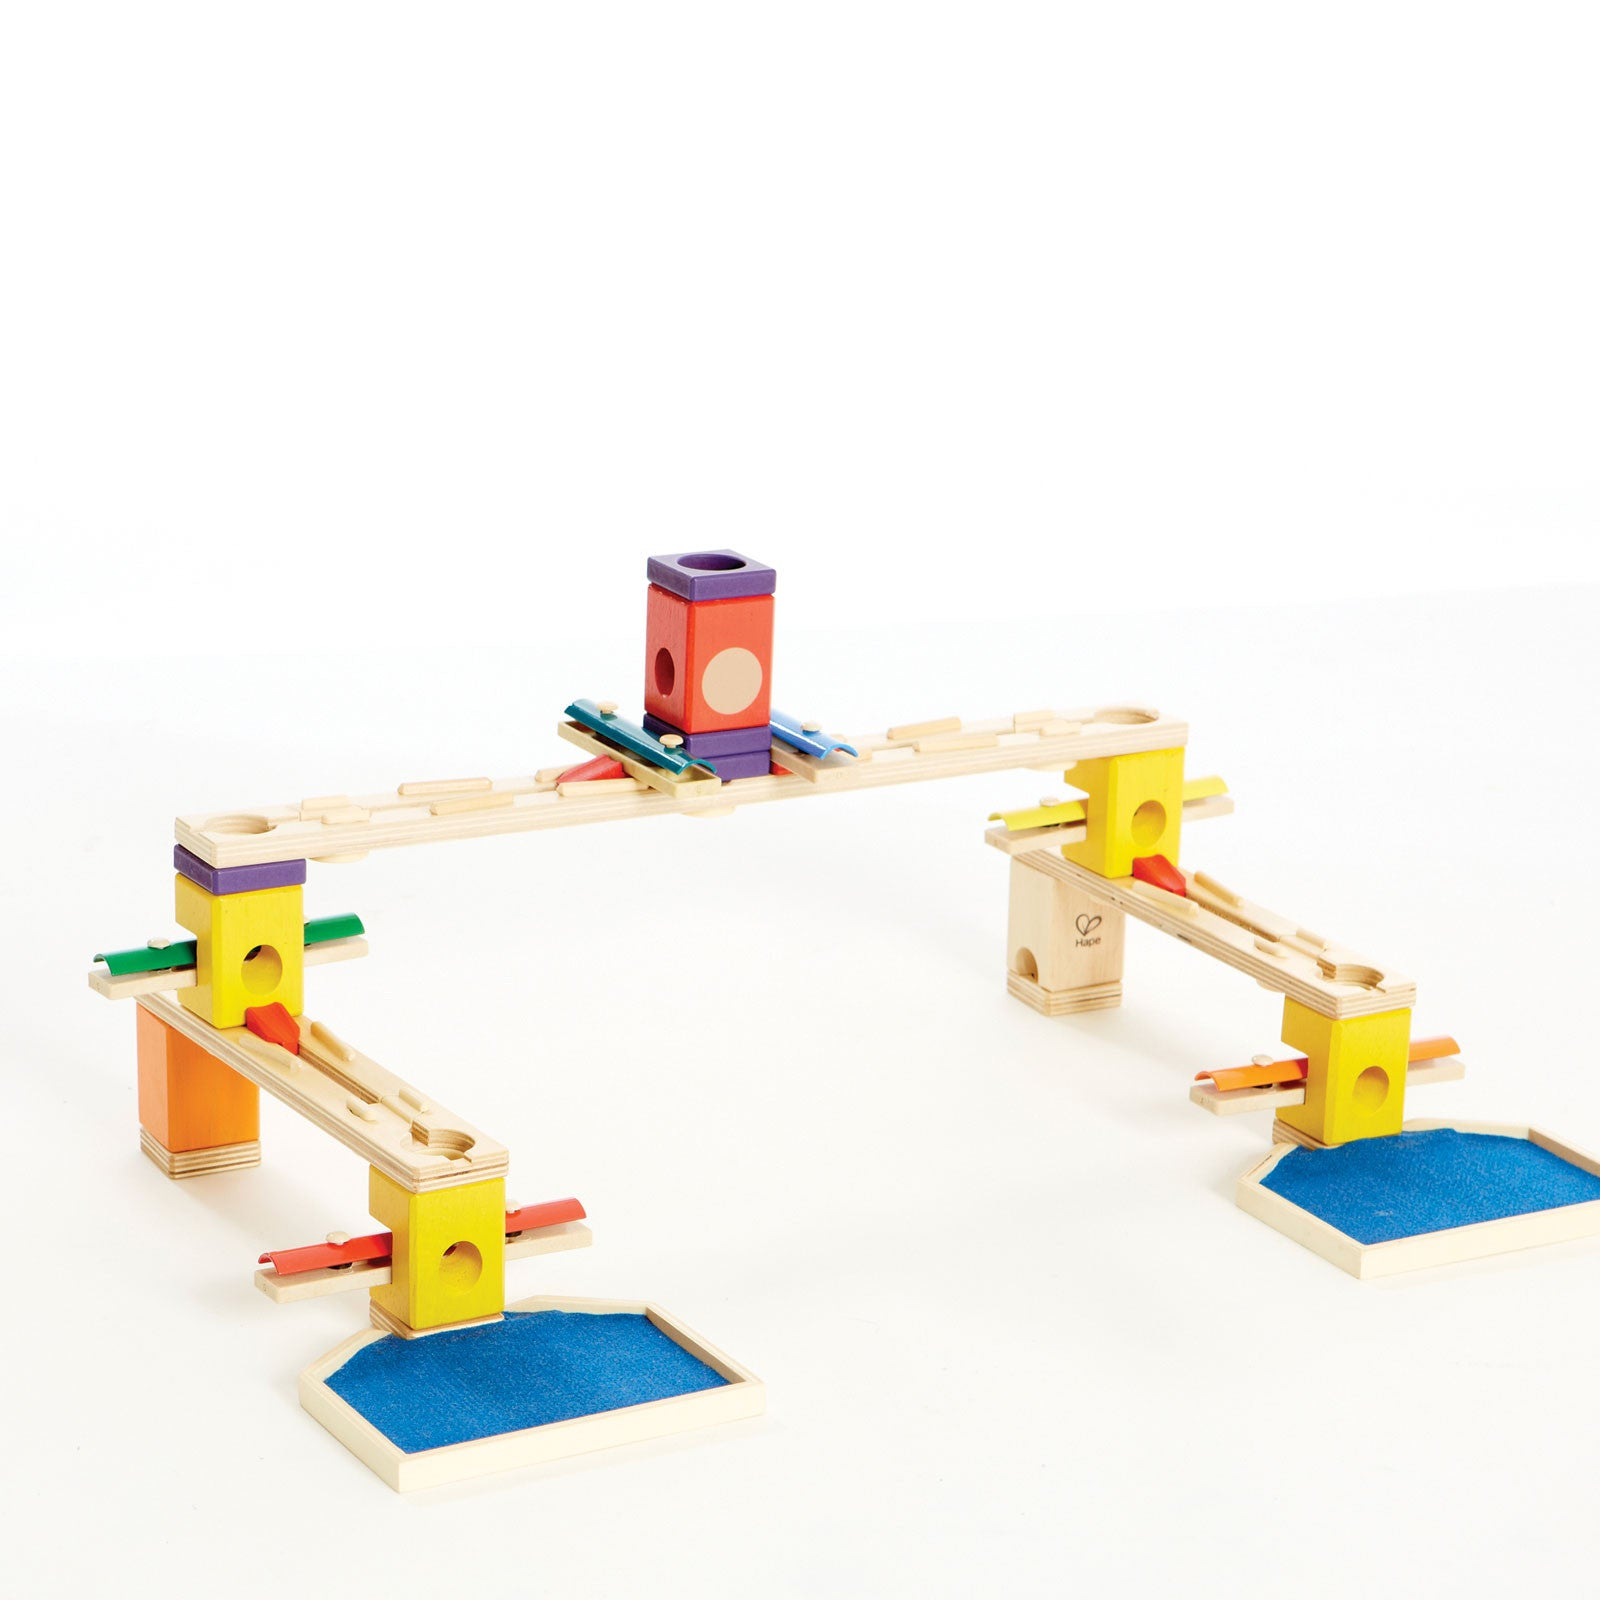 Hape Quadrilla Music Motion Marble Run   - Hape - Little Earth Nest - 1